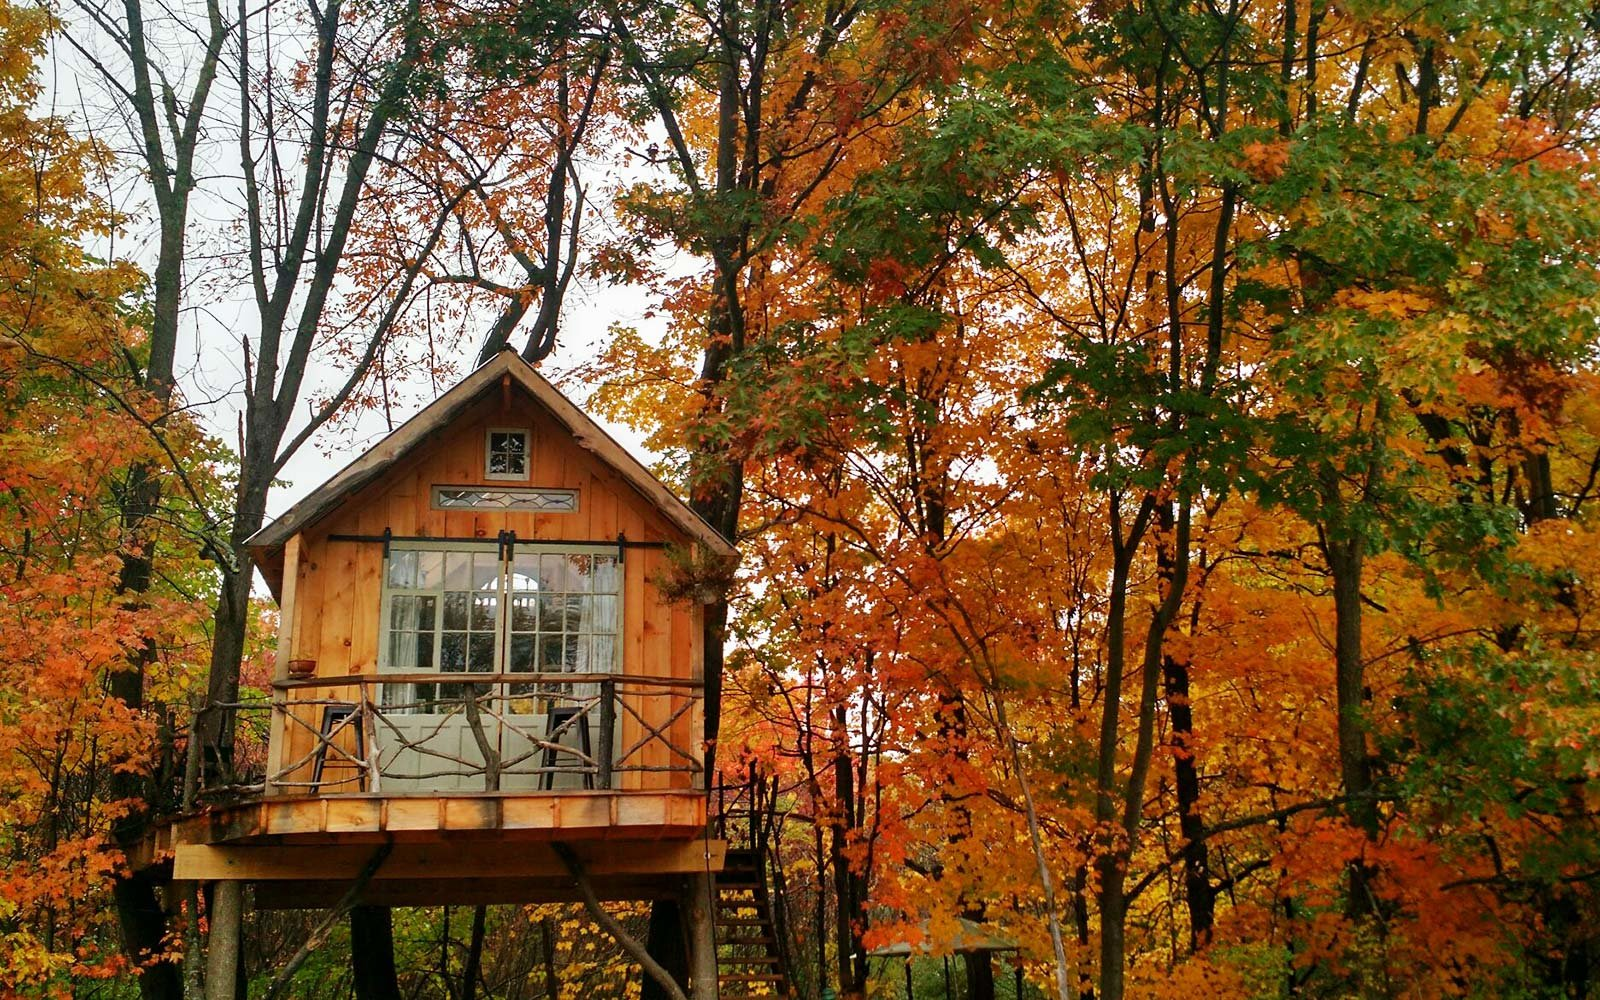 The Best Airbnbs to Rent for Fall Foliage Views | Travel +